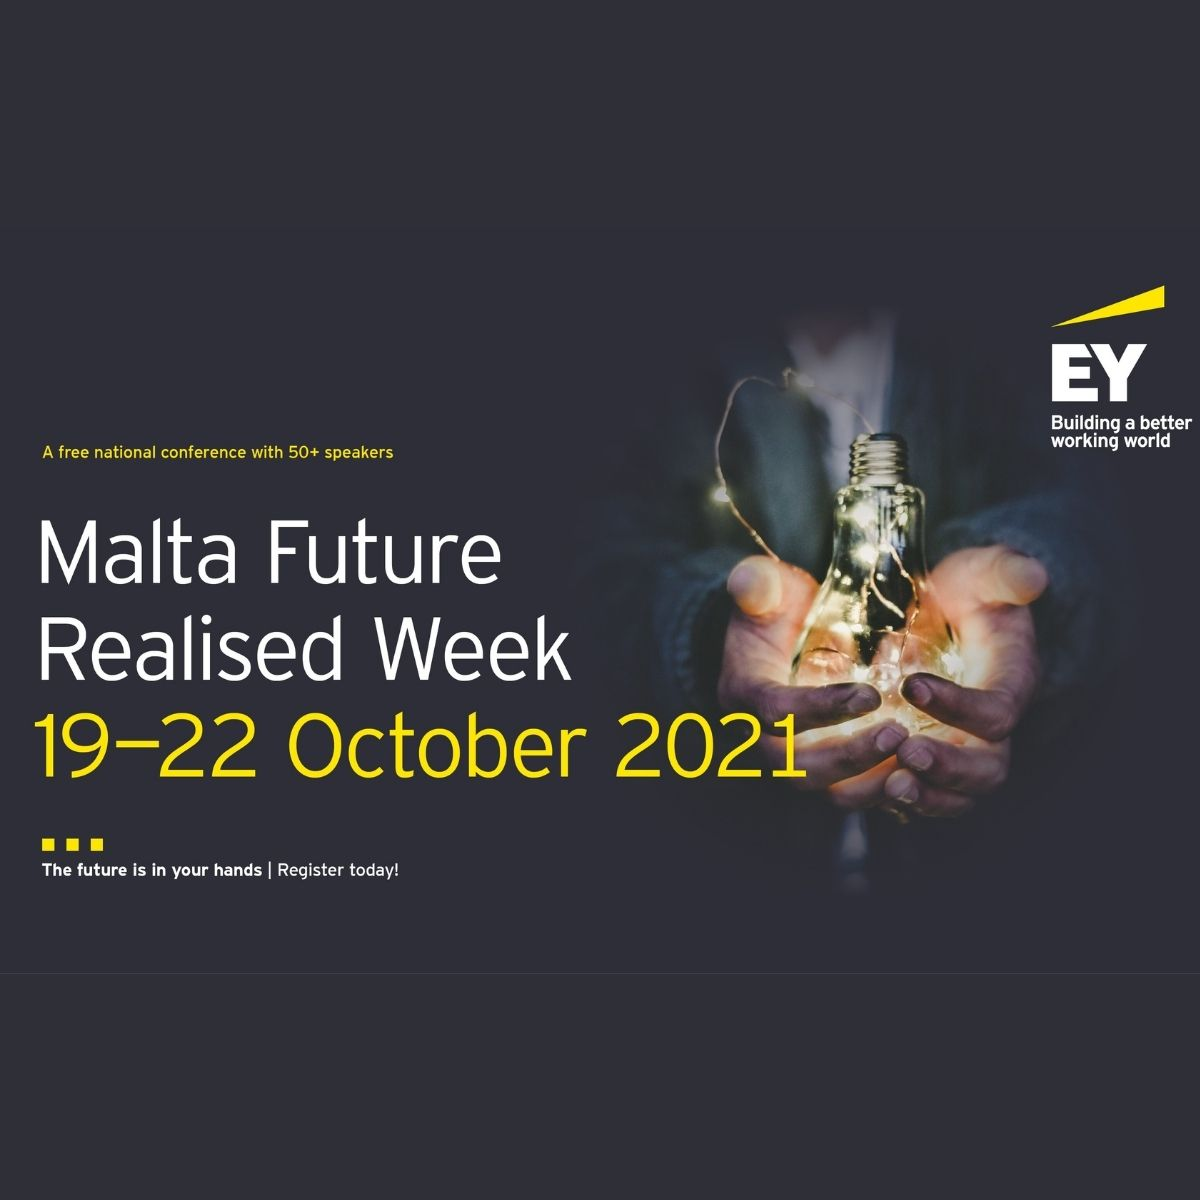 FUTURE REALISED WEEK 2021 – The Future is in your hands